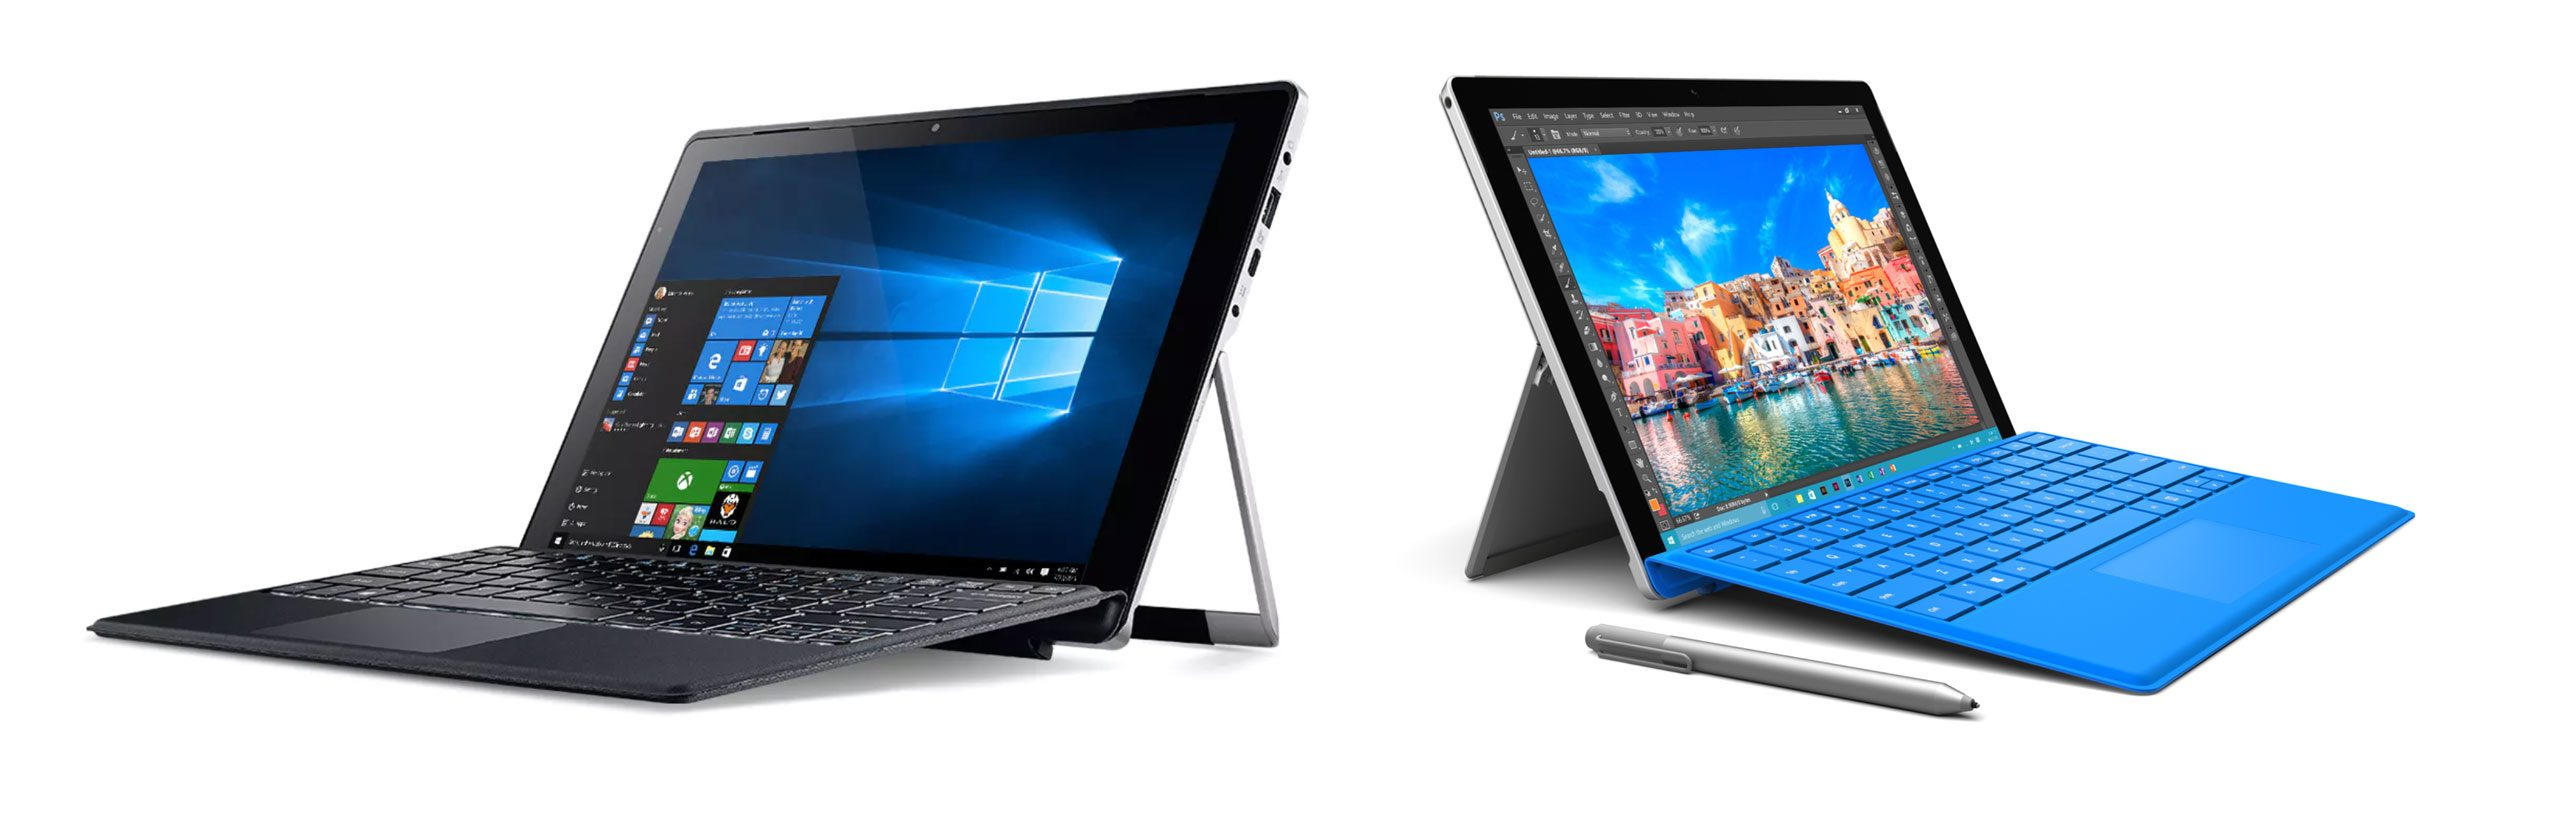 Alternatives: Acer Alpha 12 (left) and Microsoft Surface Pro (right)